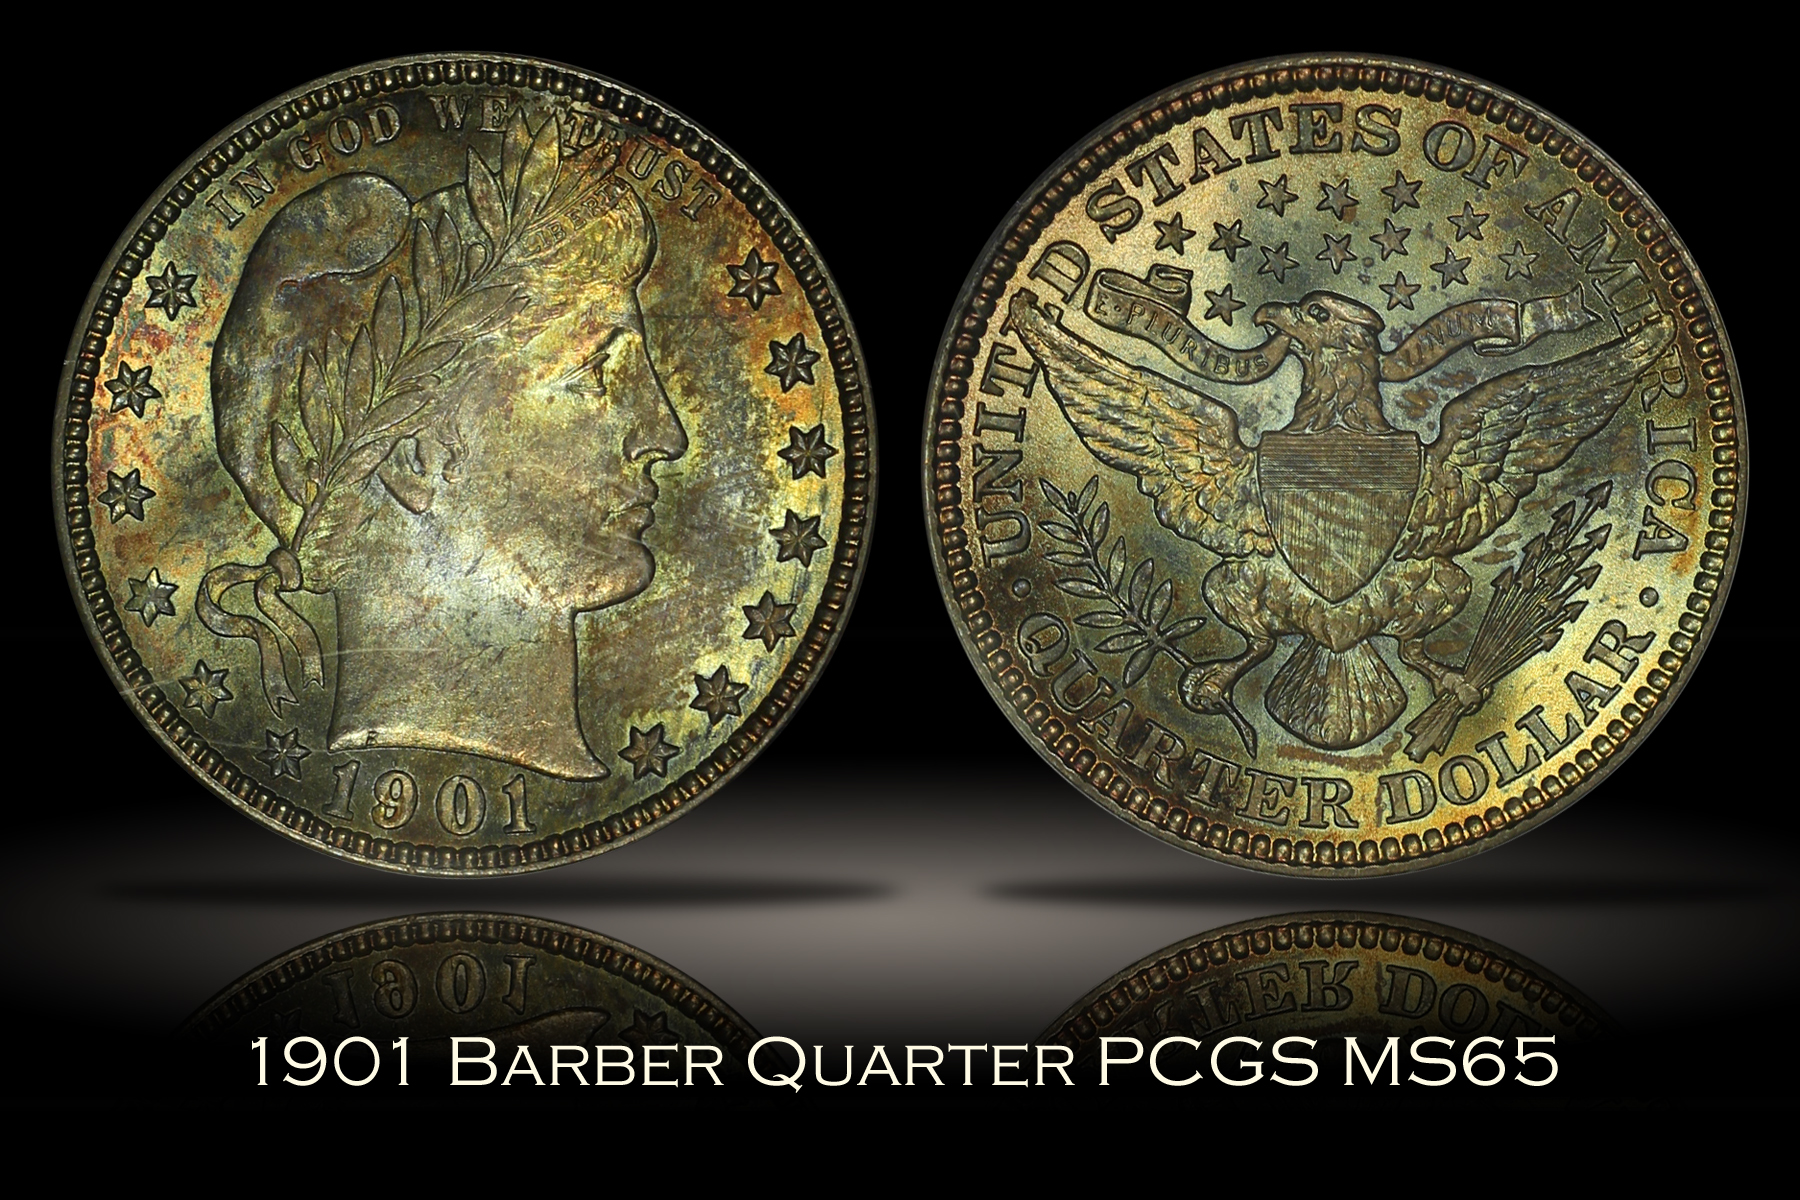 1901 Barber Quarter PCGS MS65